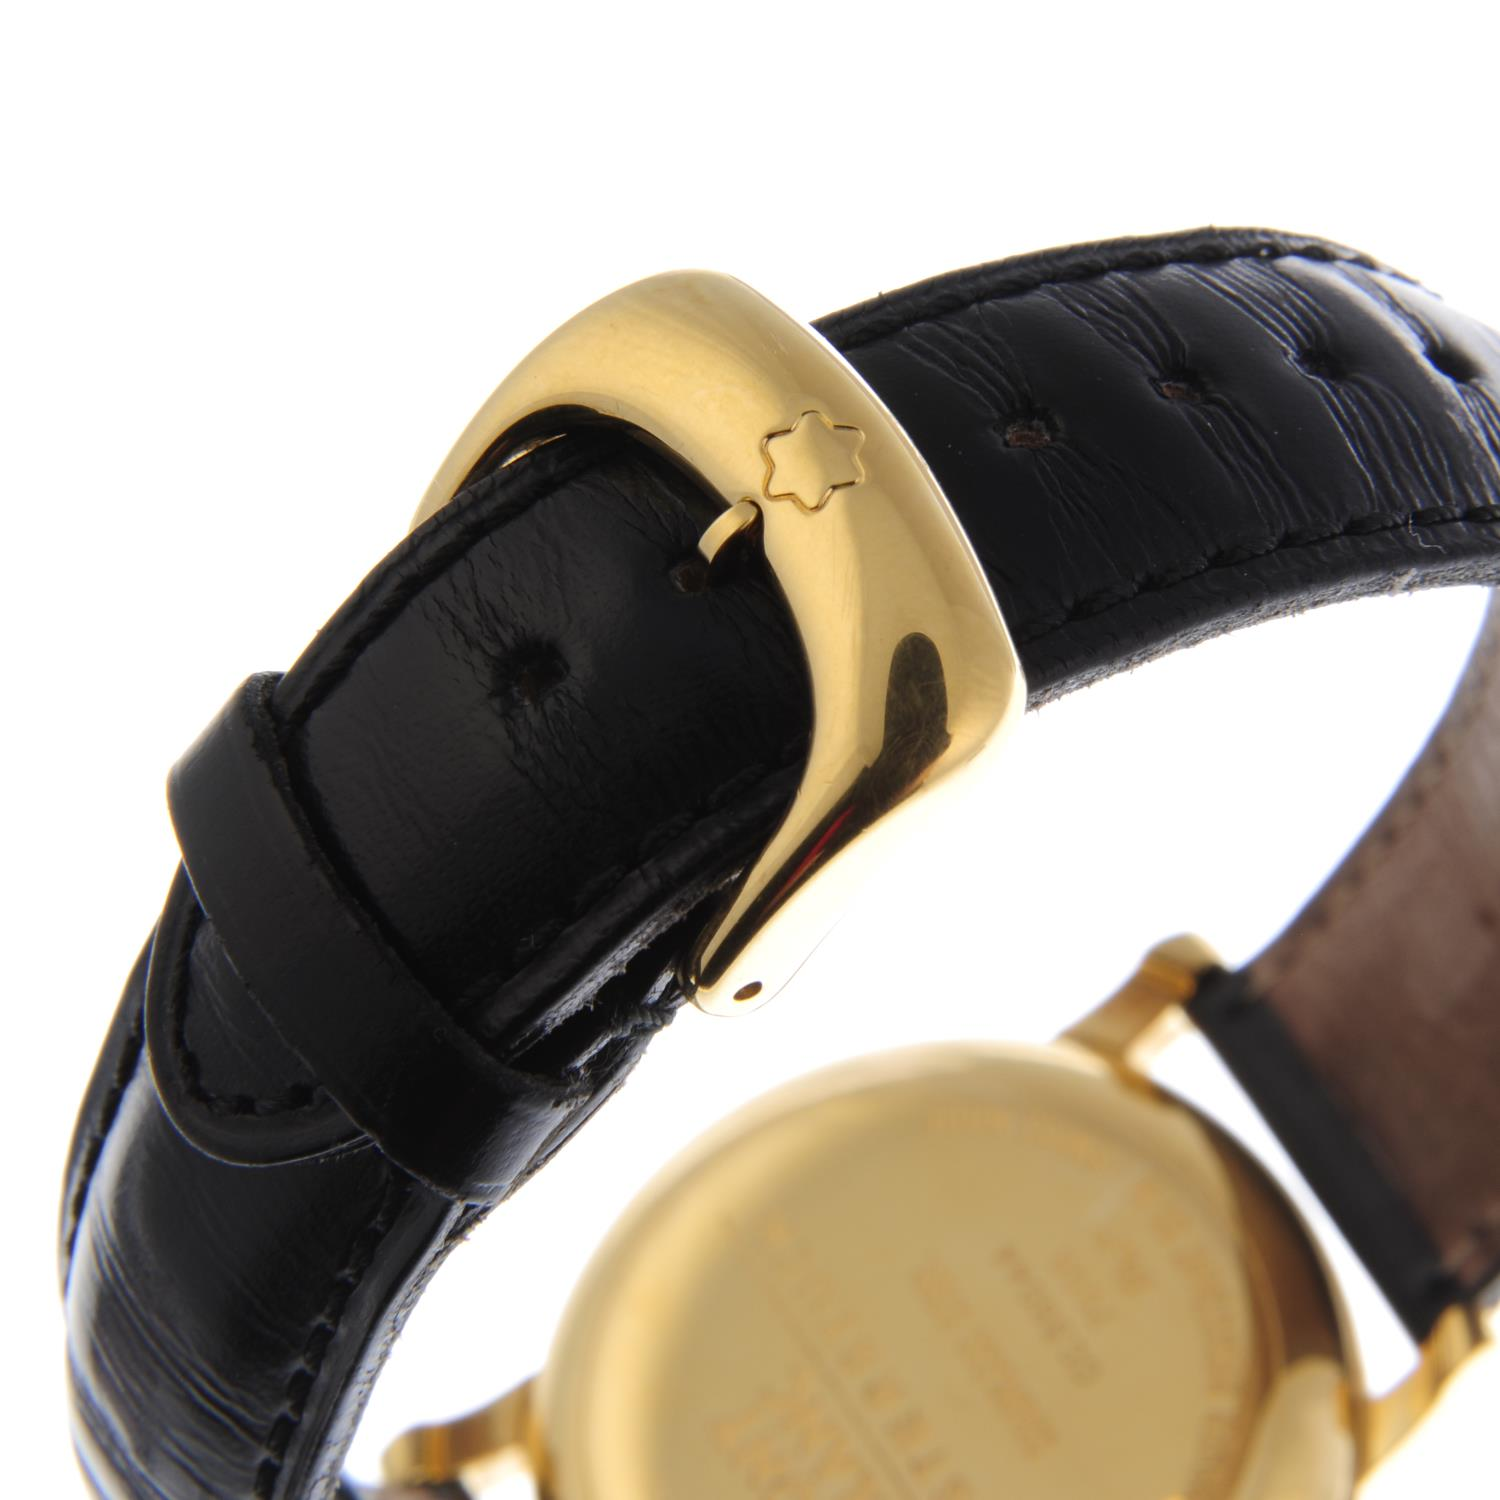 Lot 181 - MONTBLANC - a gentleman's Meisterstück wrist watch. Gold plated case. Reference 7003, serial